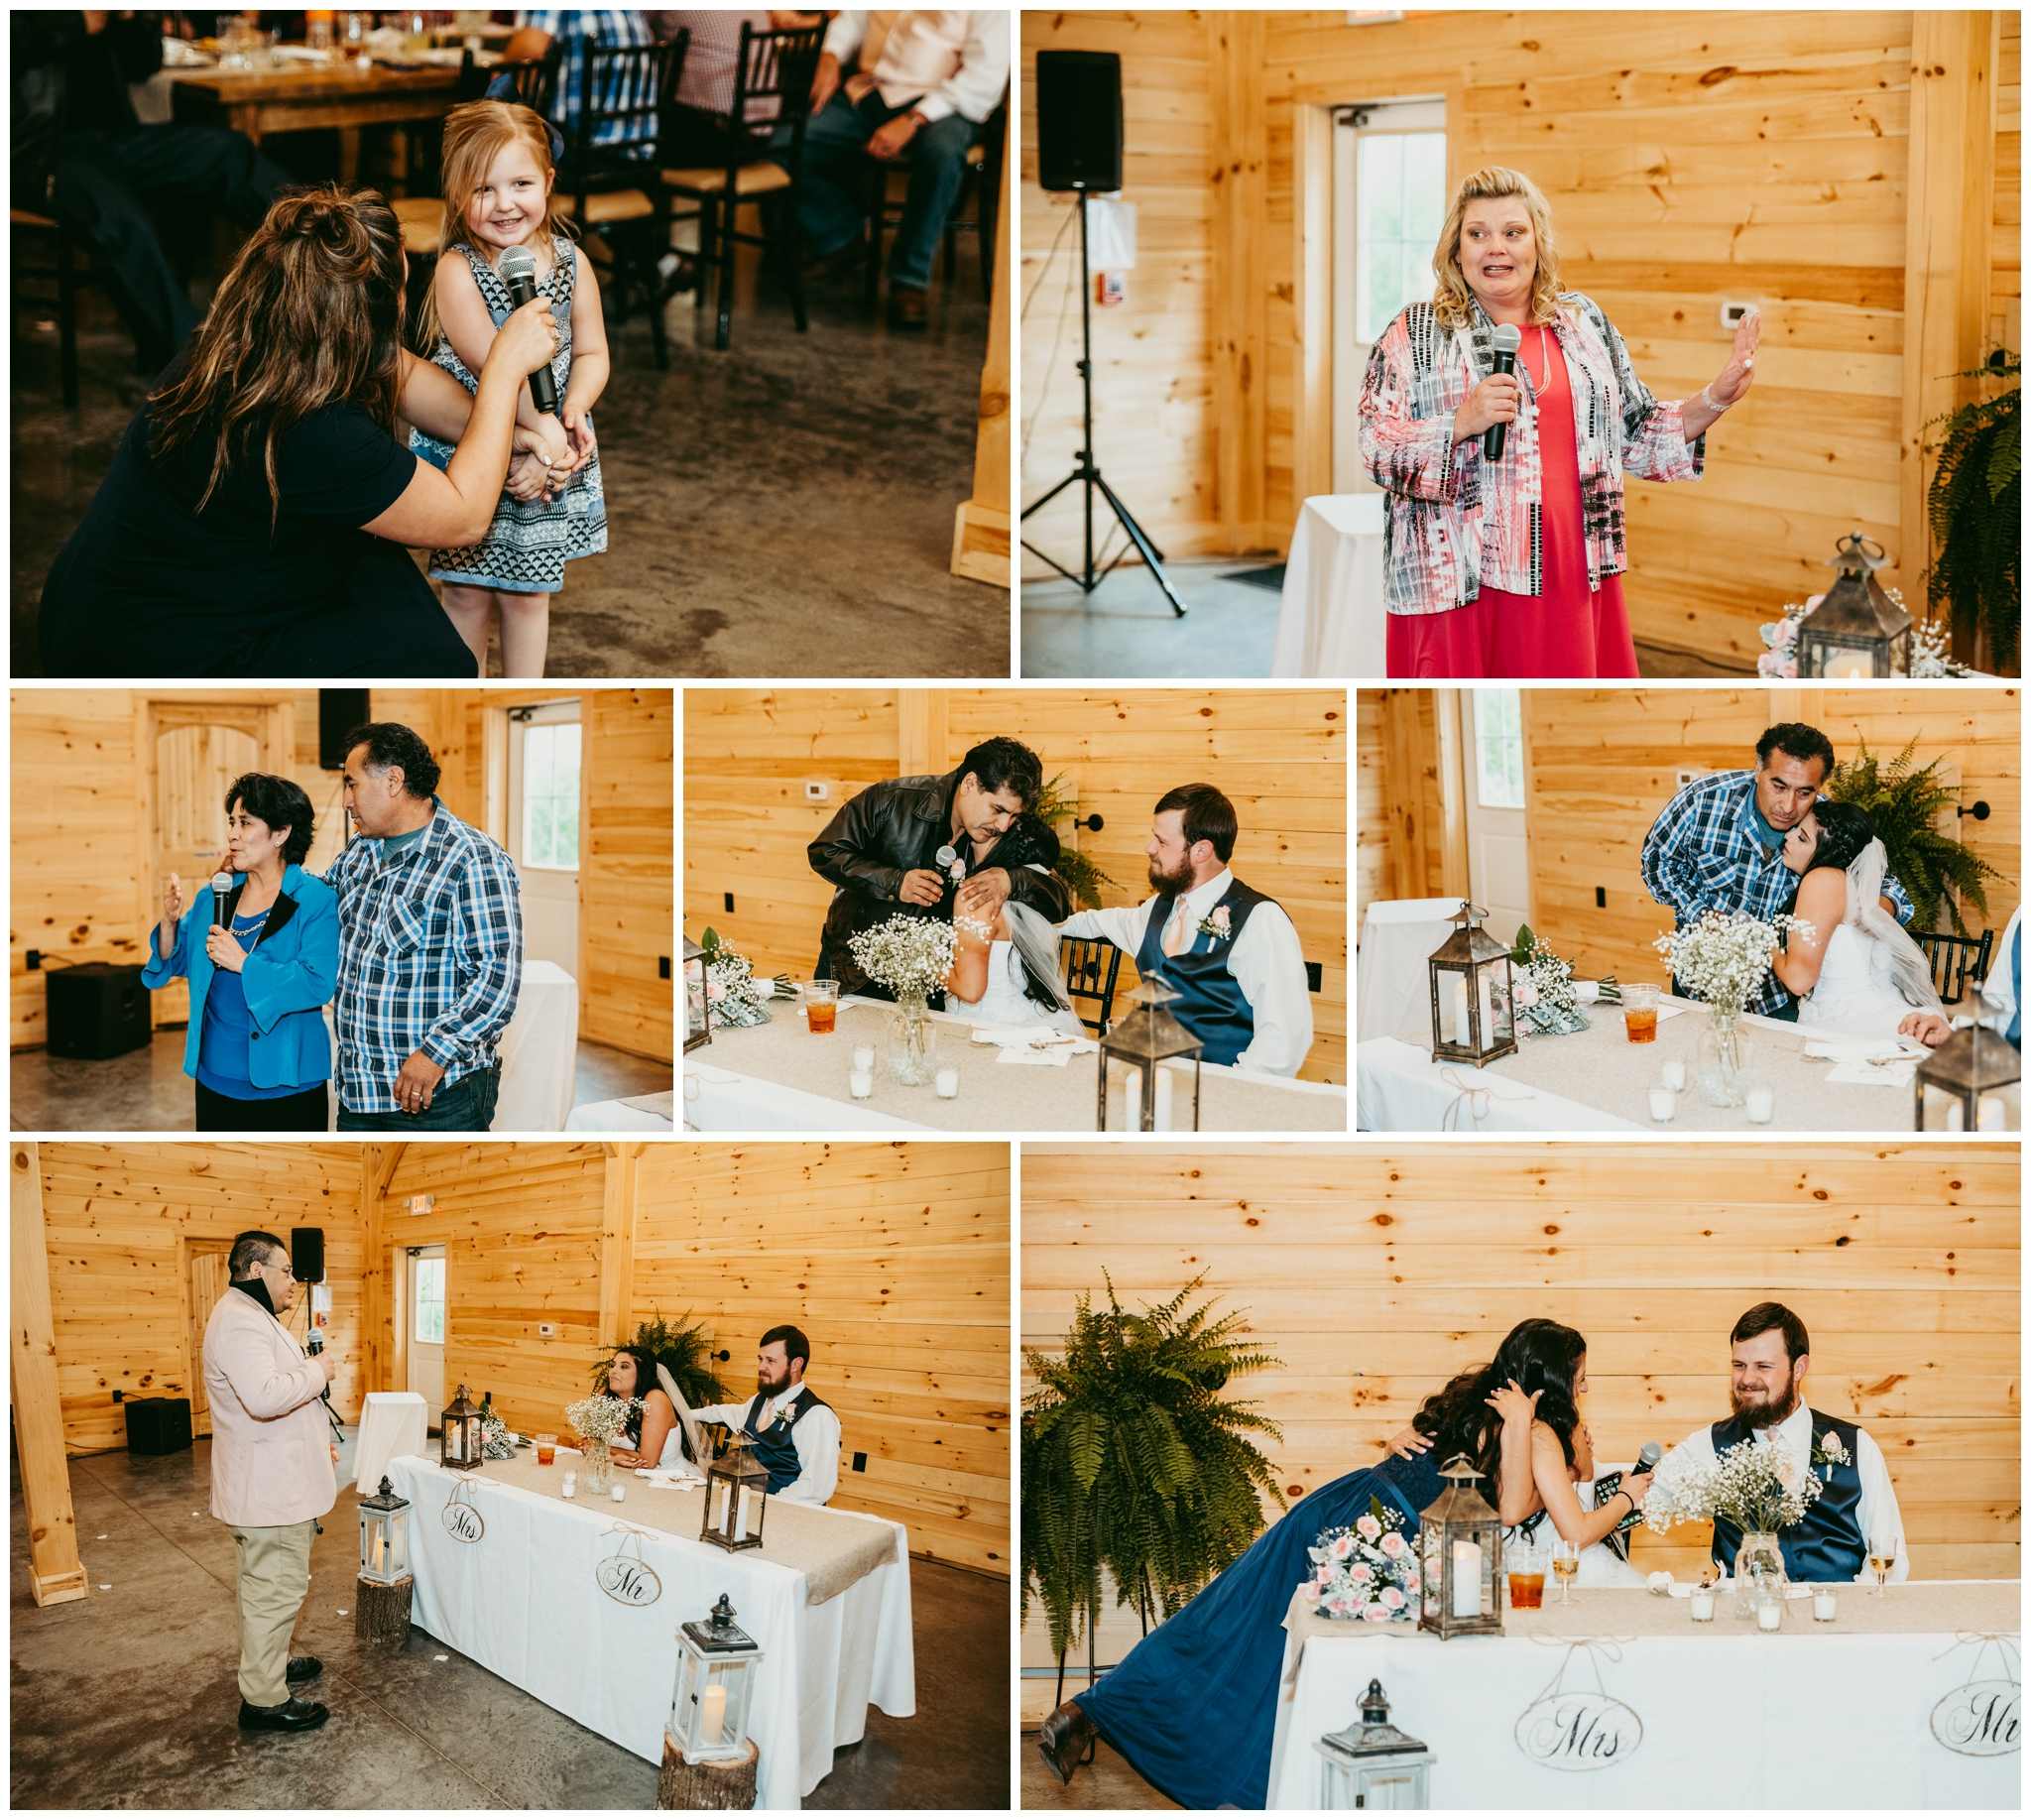 The toast had everyone crying. Veronika's mom spoke. Bradley's father spoke. Veronika's aunt and uncle spoke. Veronika's best friend / maid-of-honor spoke. There was one last special tiny little guest that came to wish the new couple a happily ever after …